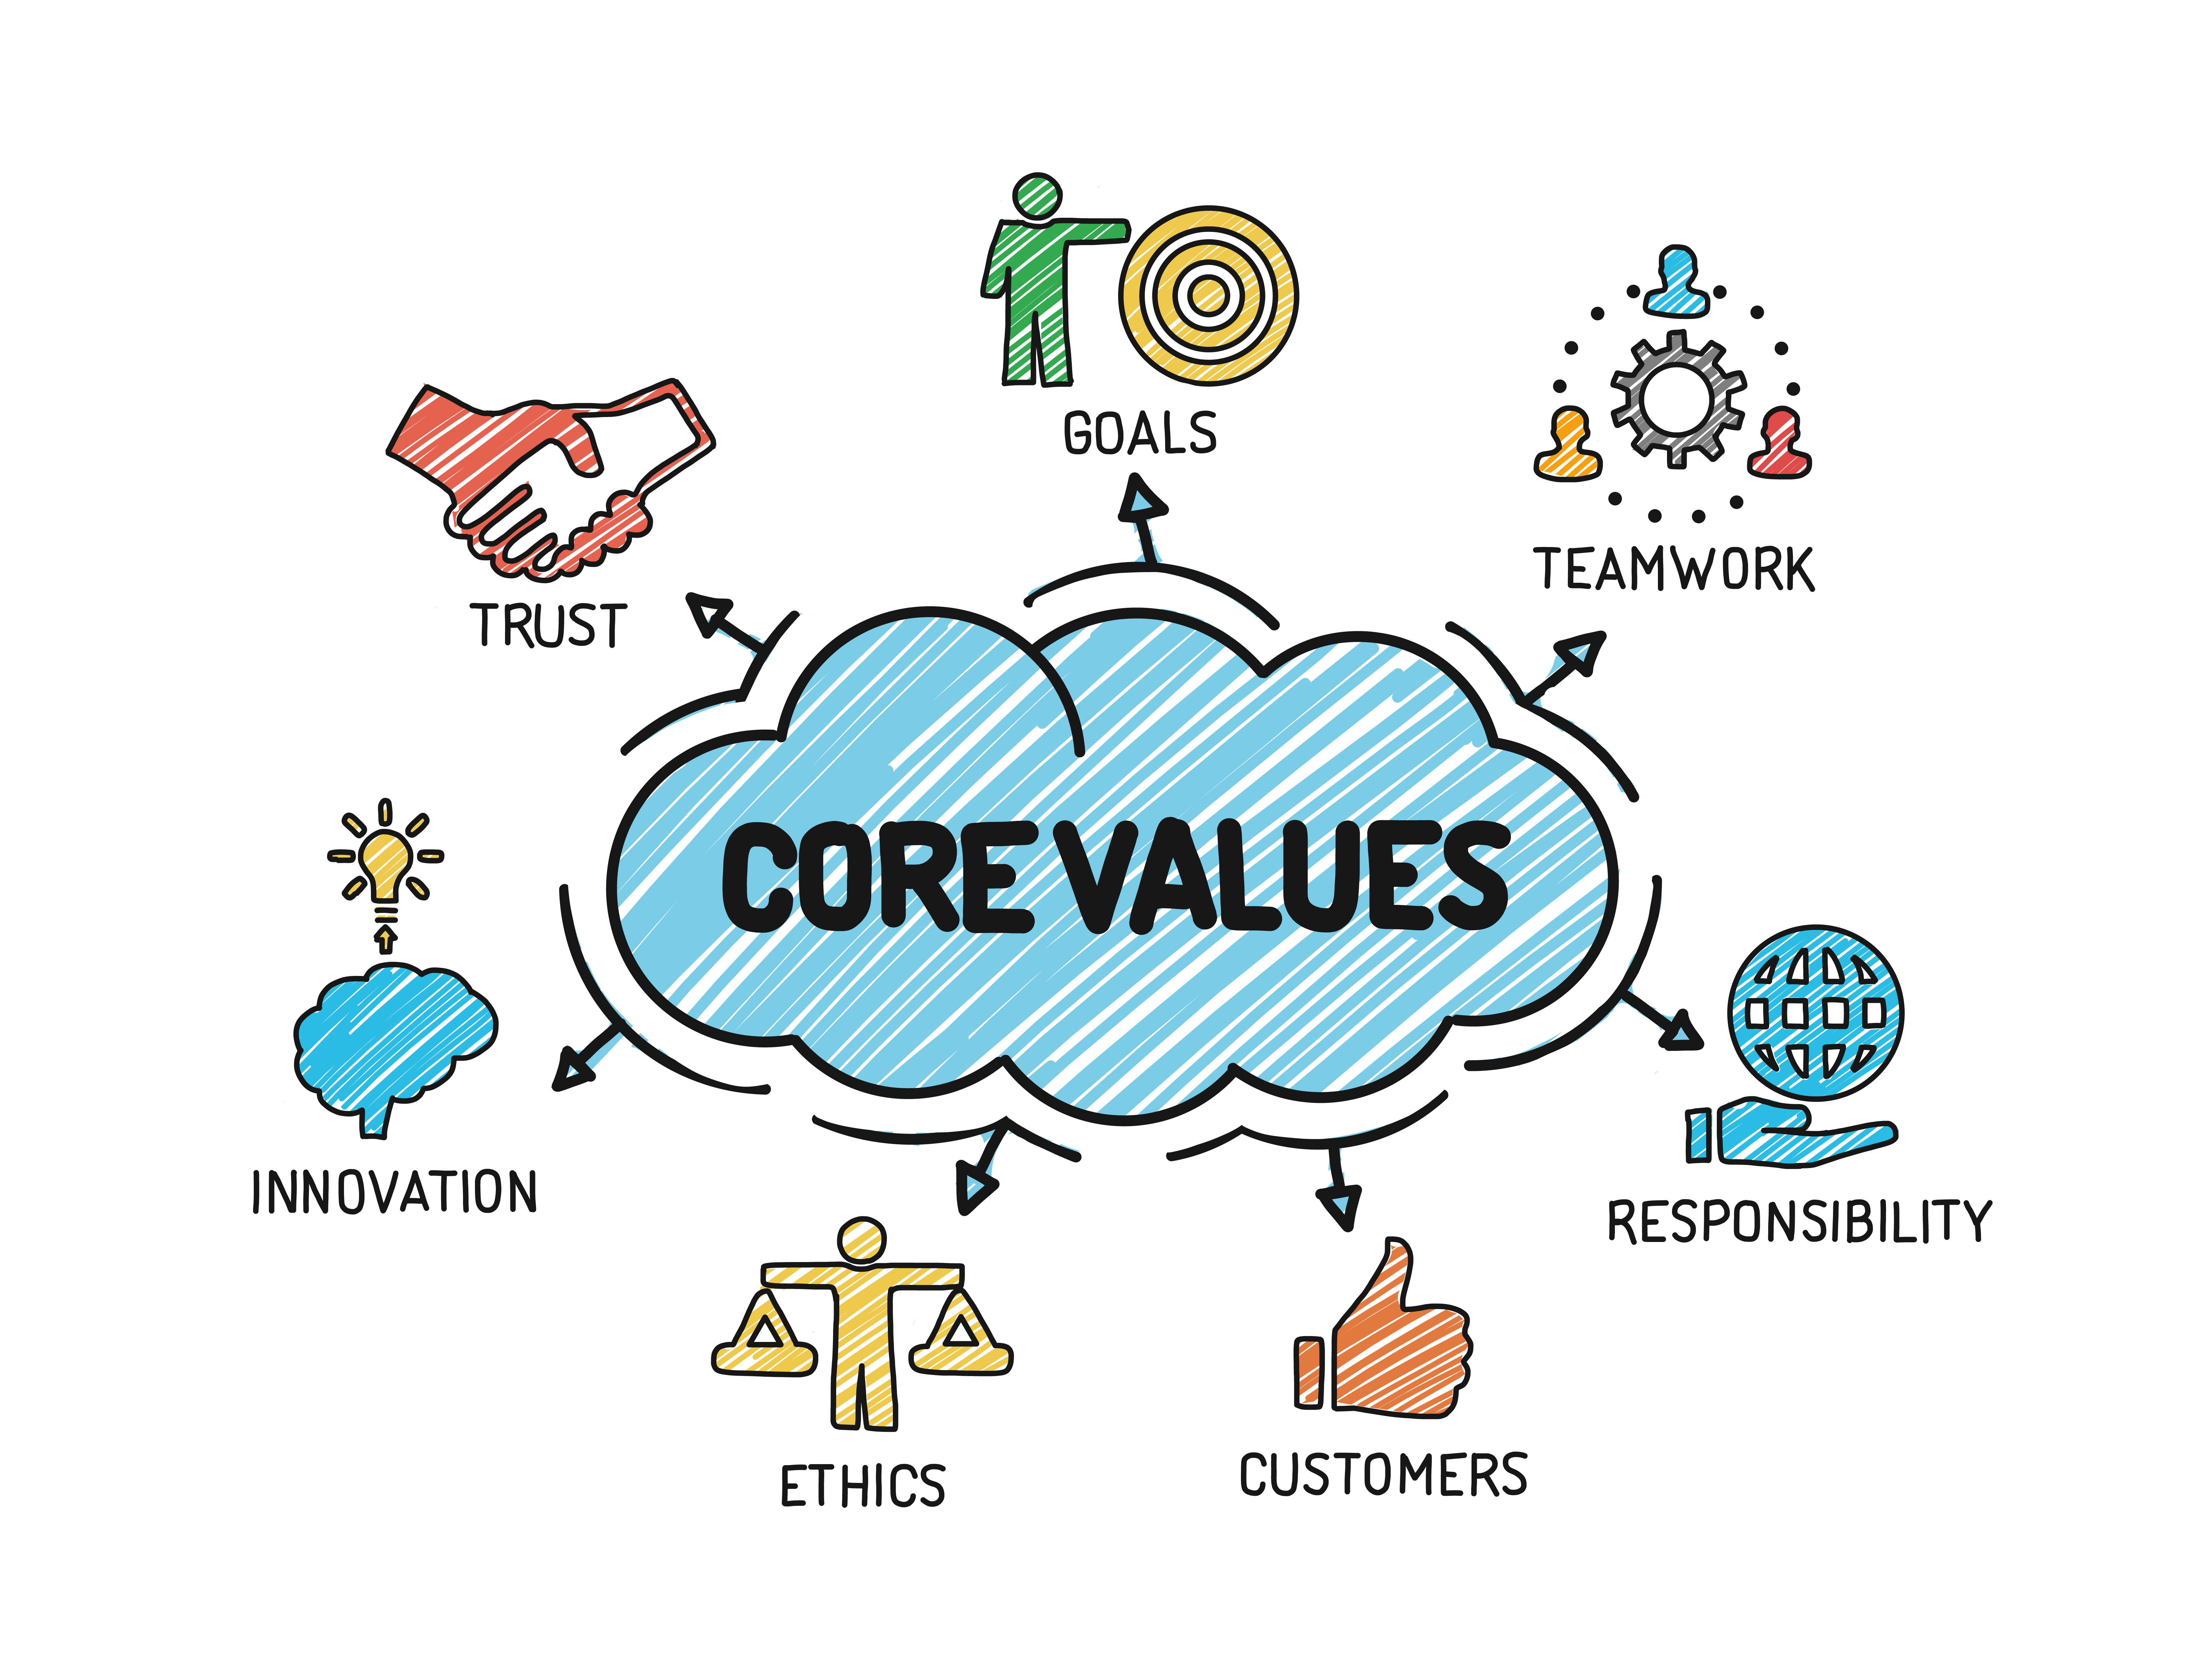 Start promoting your firm's values – and if you don't have any create some quickly